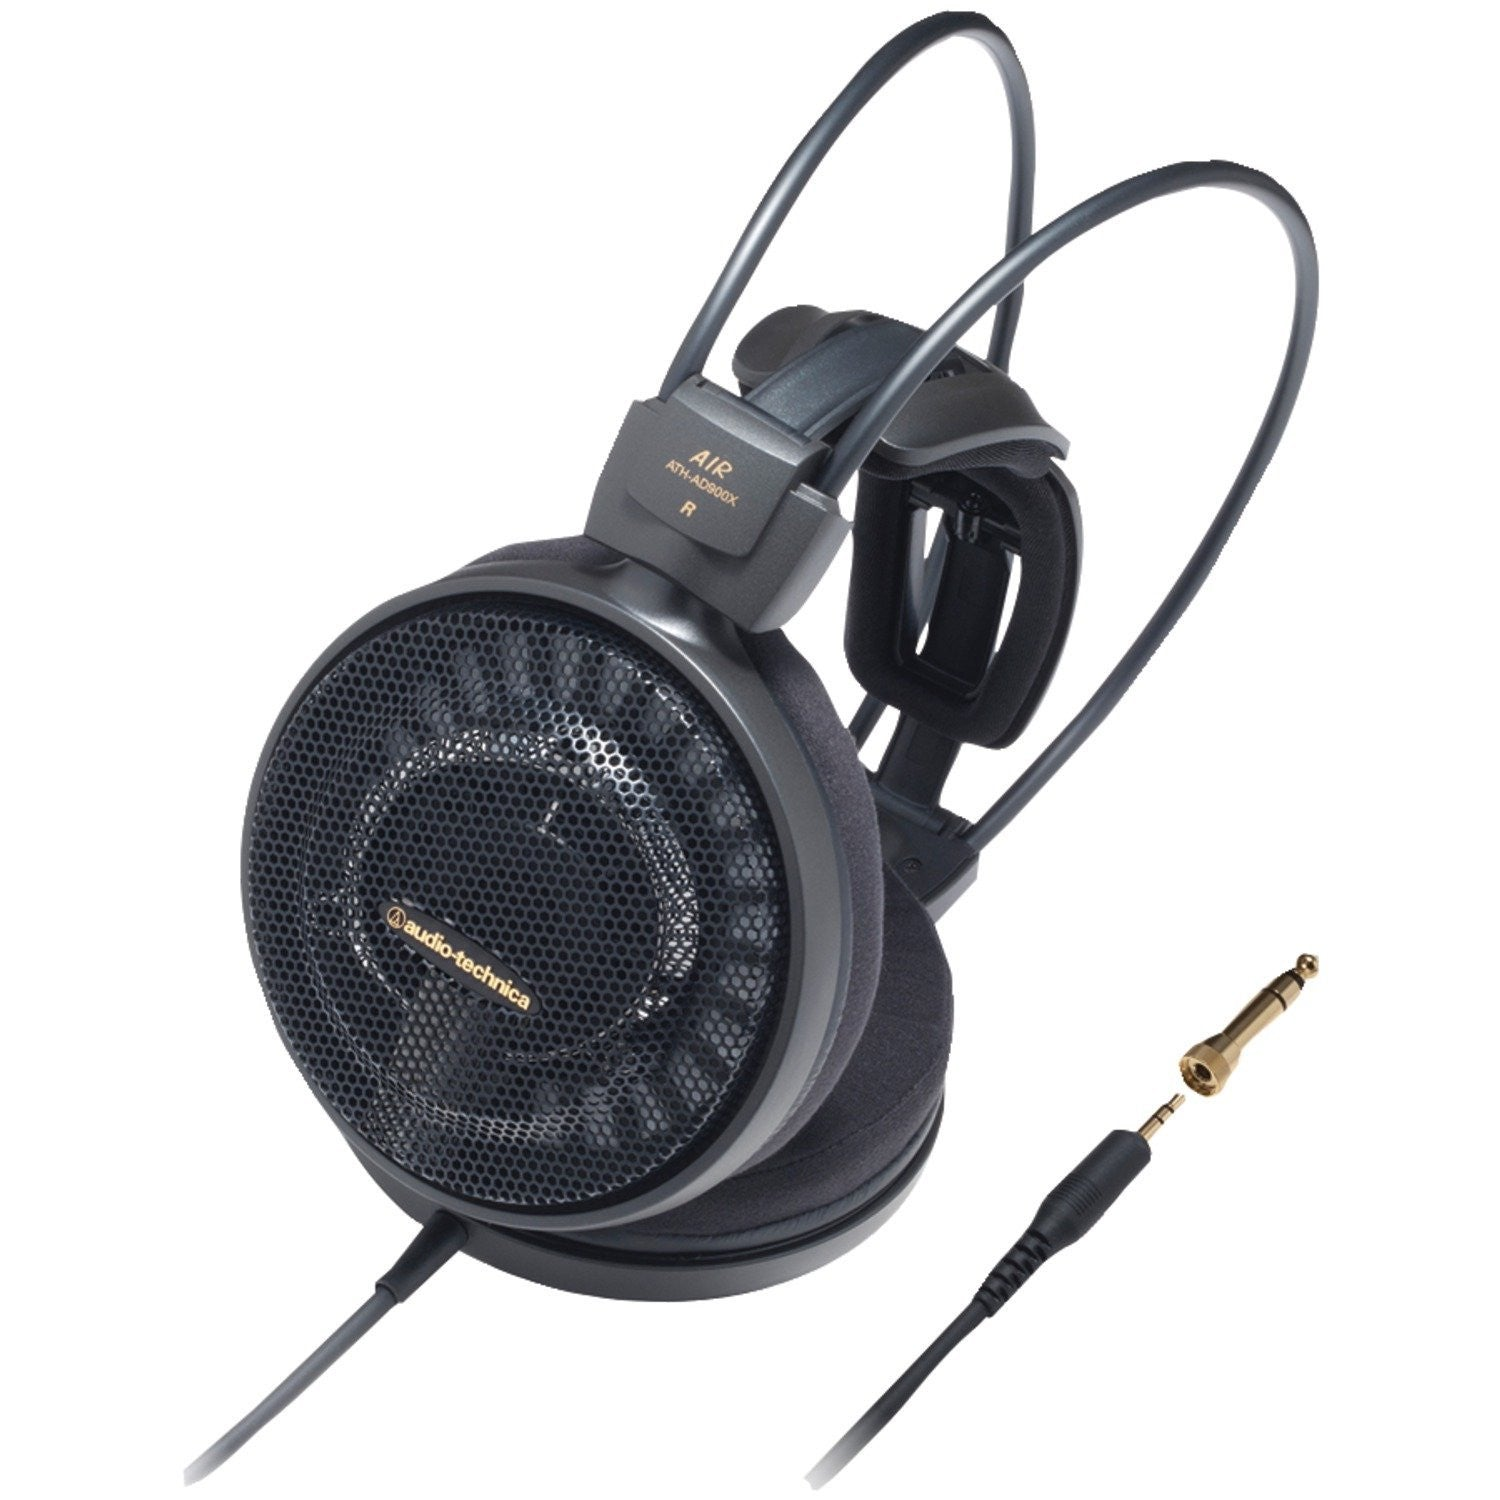 Audio Technica ATH-AD900X Audiophile Open-Air Headphone